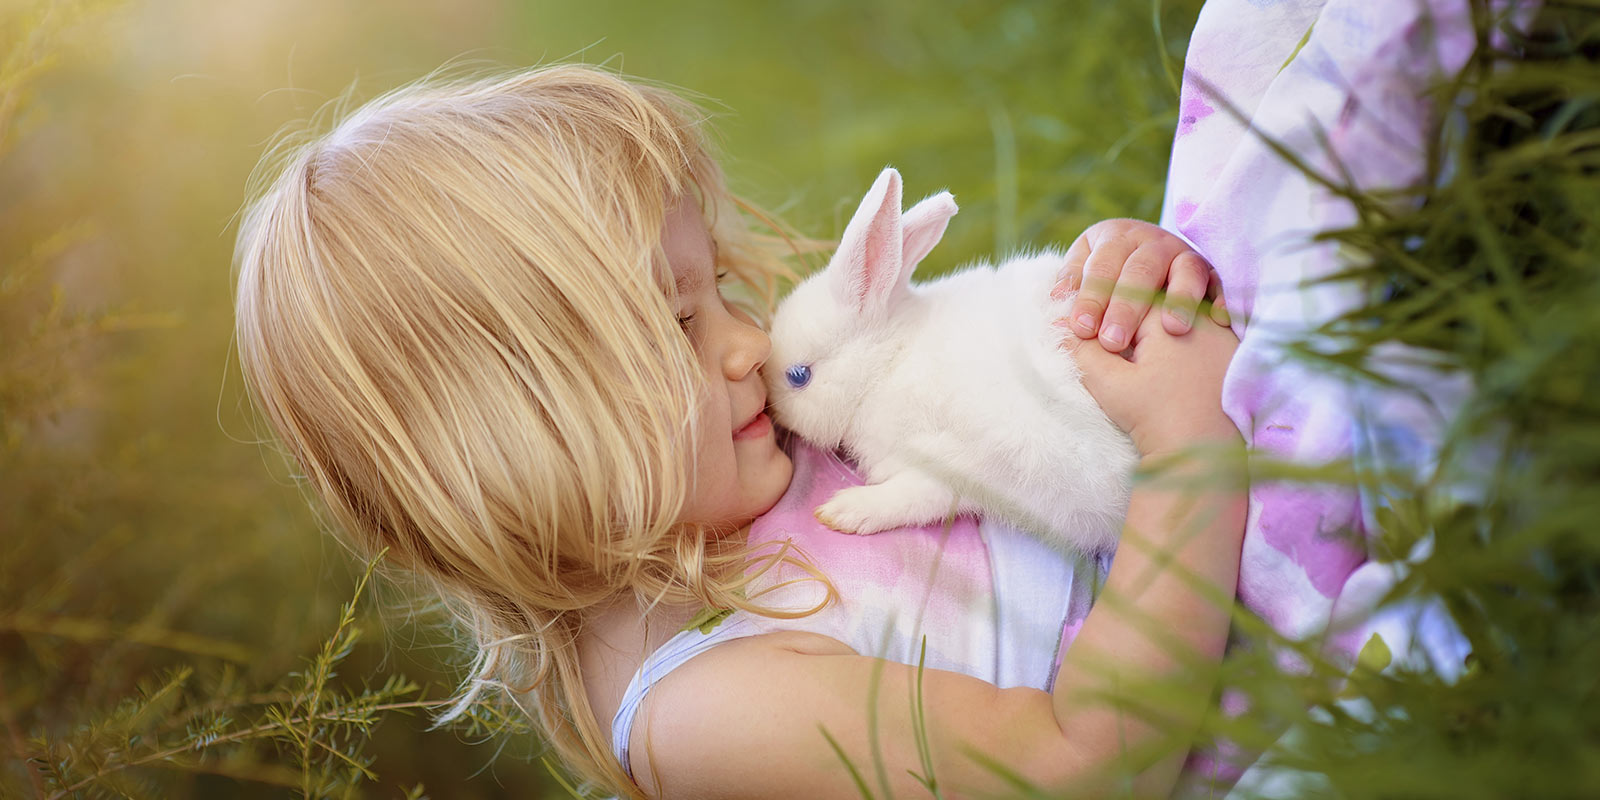 Little girl cradling pet rabbit.